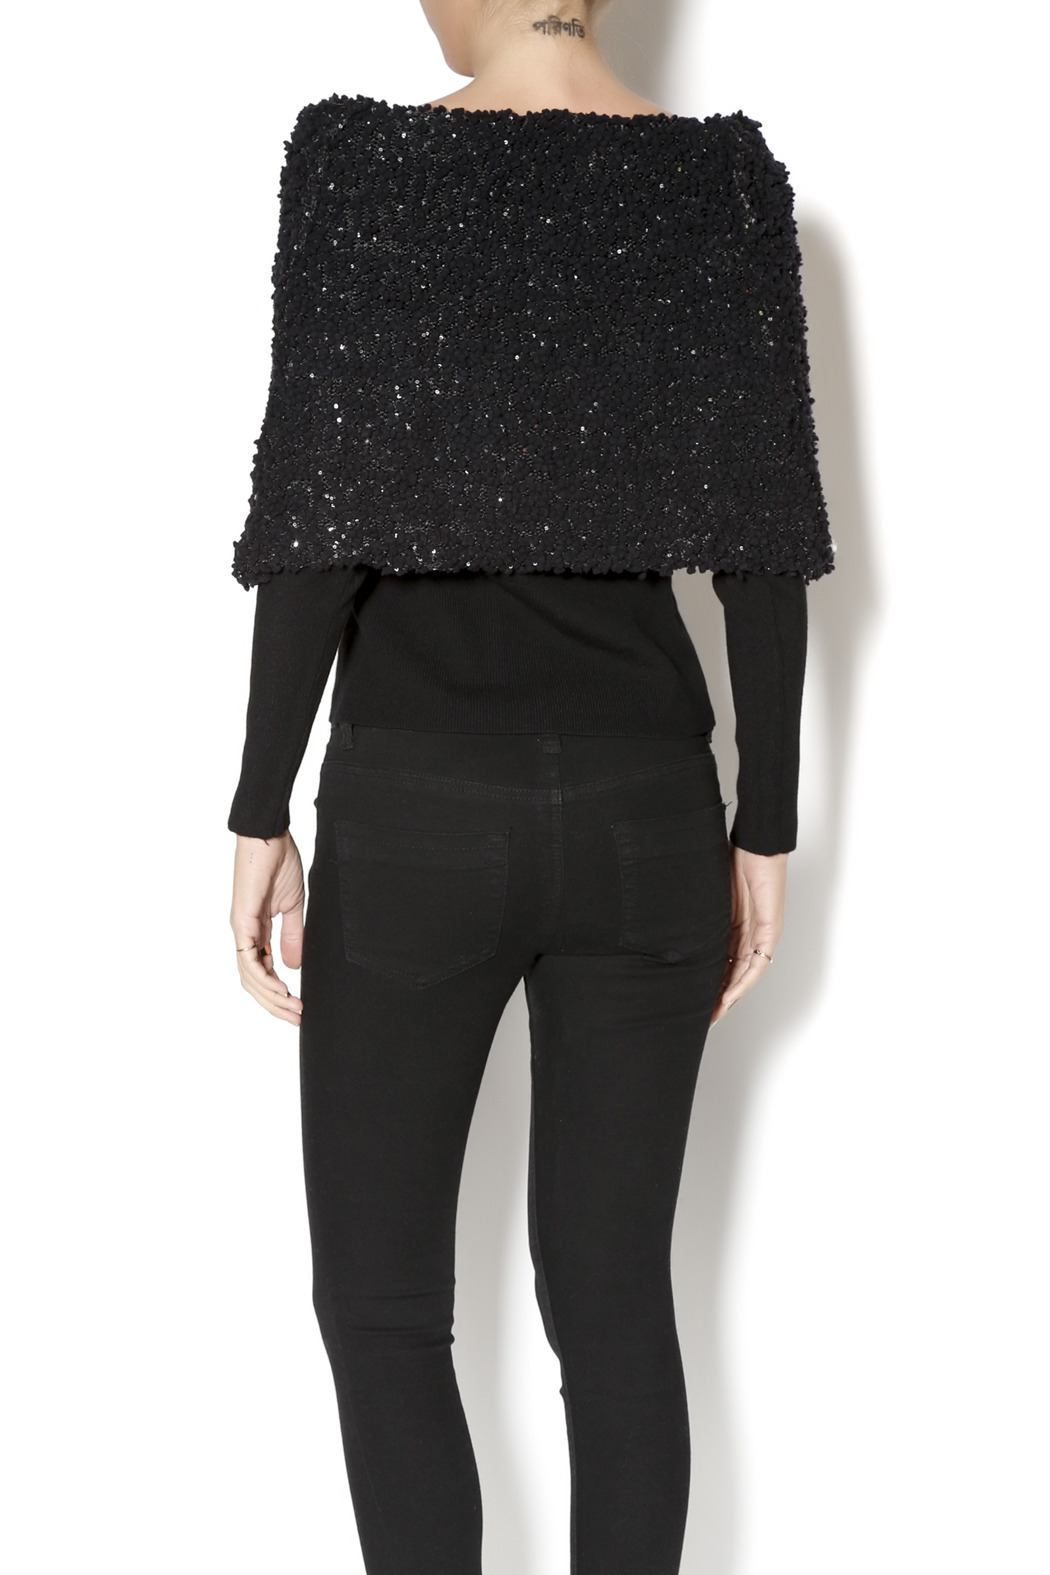 Talk of the Walk Textured Shimmer Sweater - Back Cropped Image